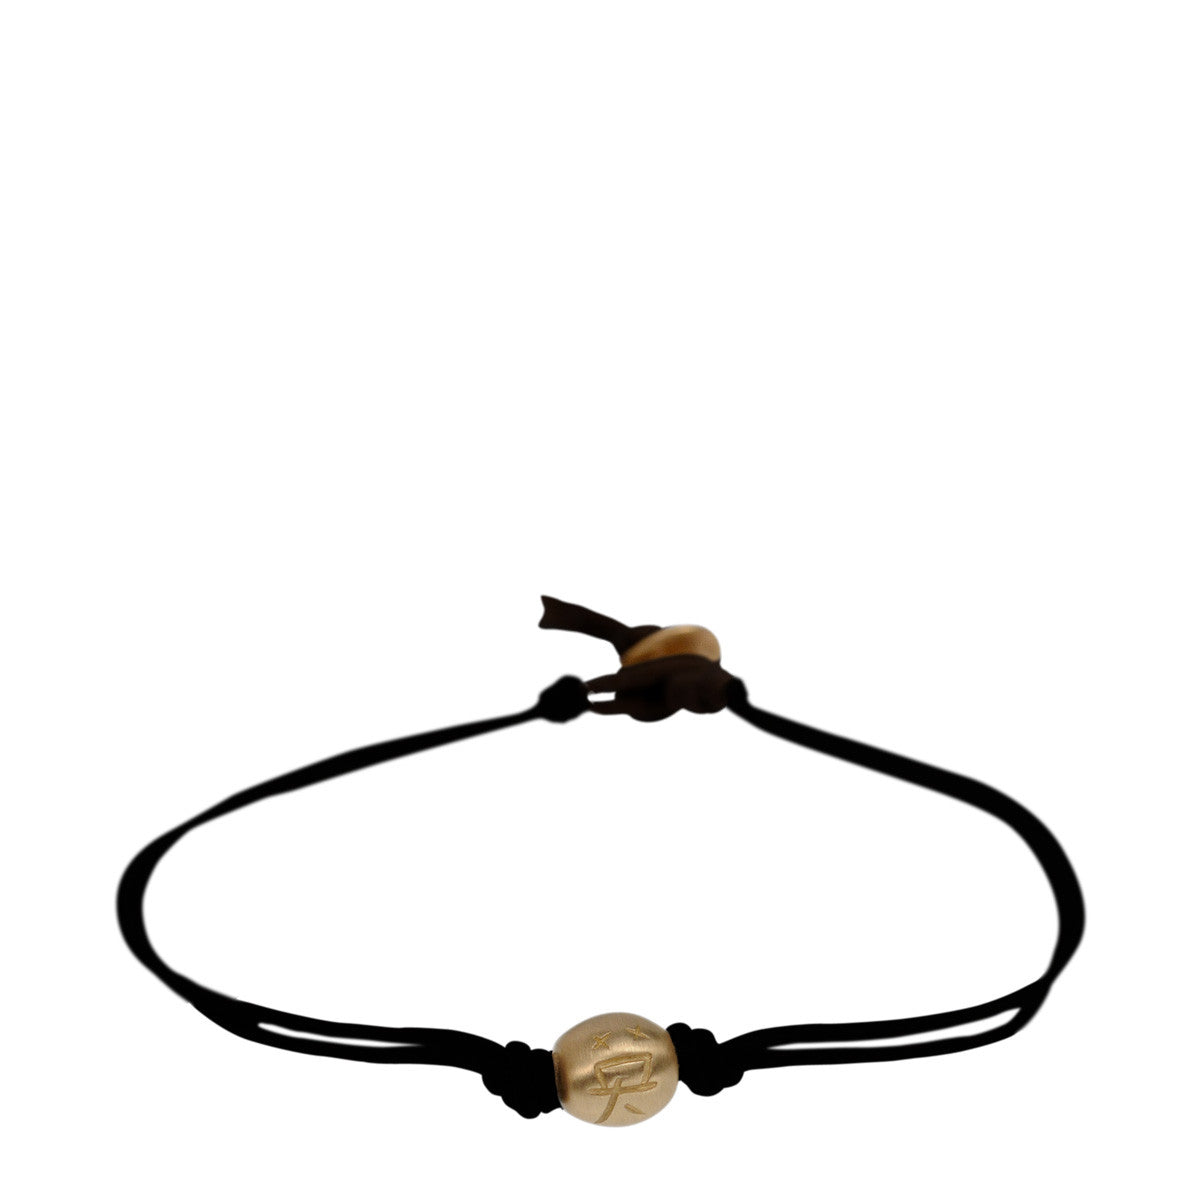 10K Gold Courage Bead Bracelet on Black Cord